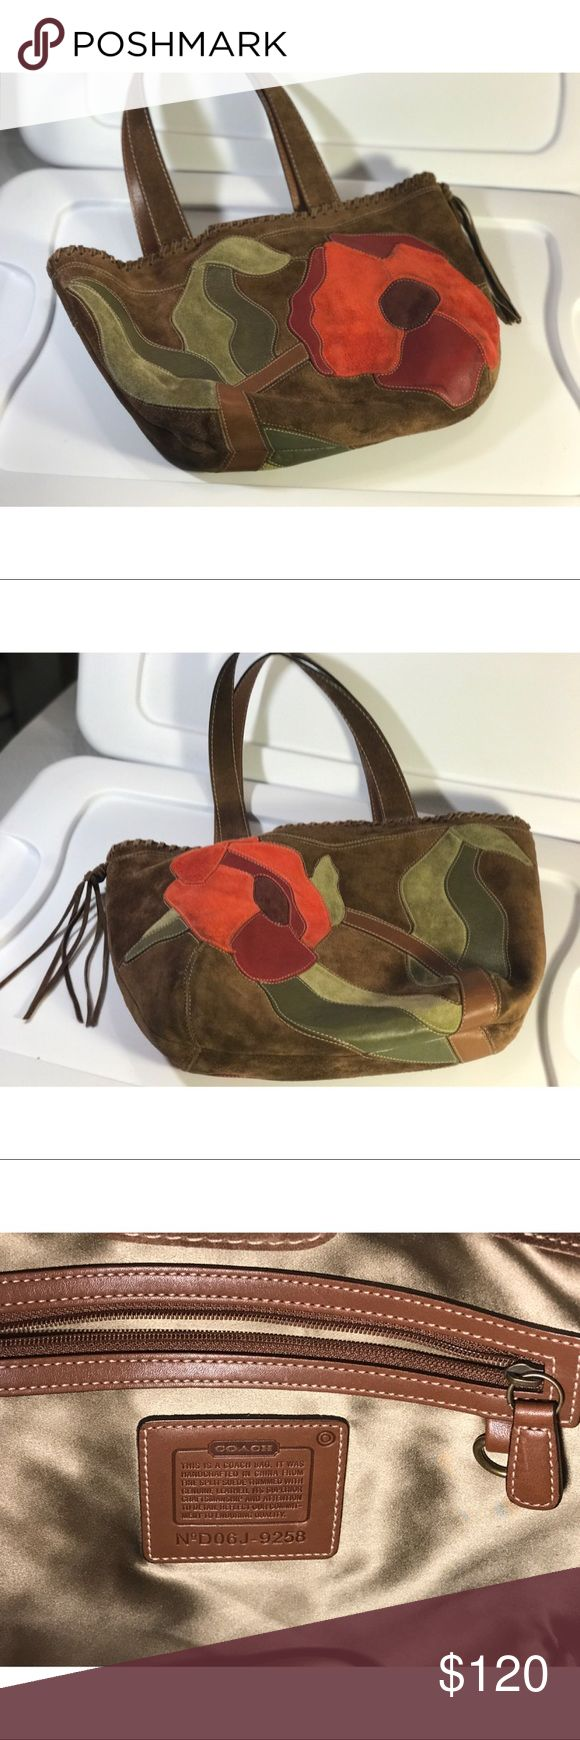 Coach SoHo Red Suede Floral Poppy for Peace Purse Coach Limited Edition SoHo Red Suede Floral Poppy For Peace Purse Medium Tote/ Handbag. Like new/ Light Use- small marking on front (picture shows) Coach Bags